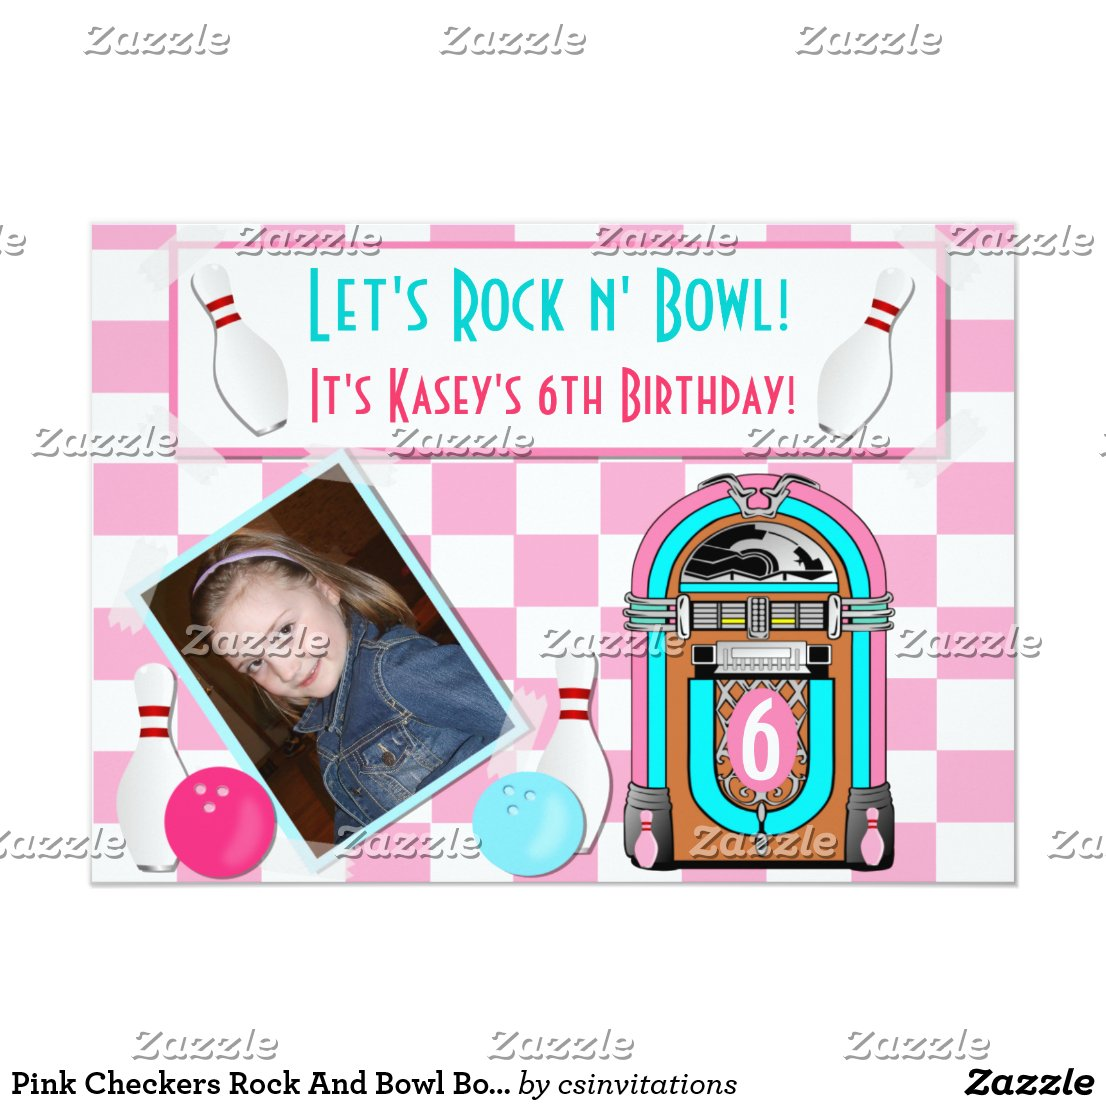 Pink Checkers Rock And Bowl Bowling Birthday Party